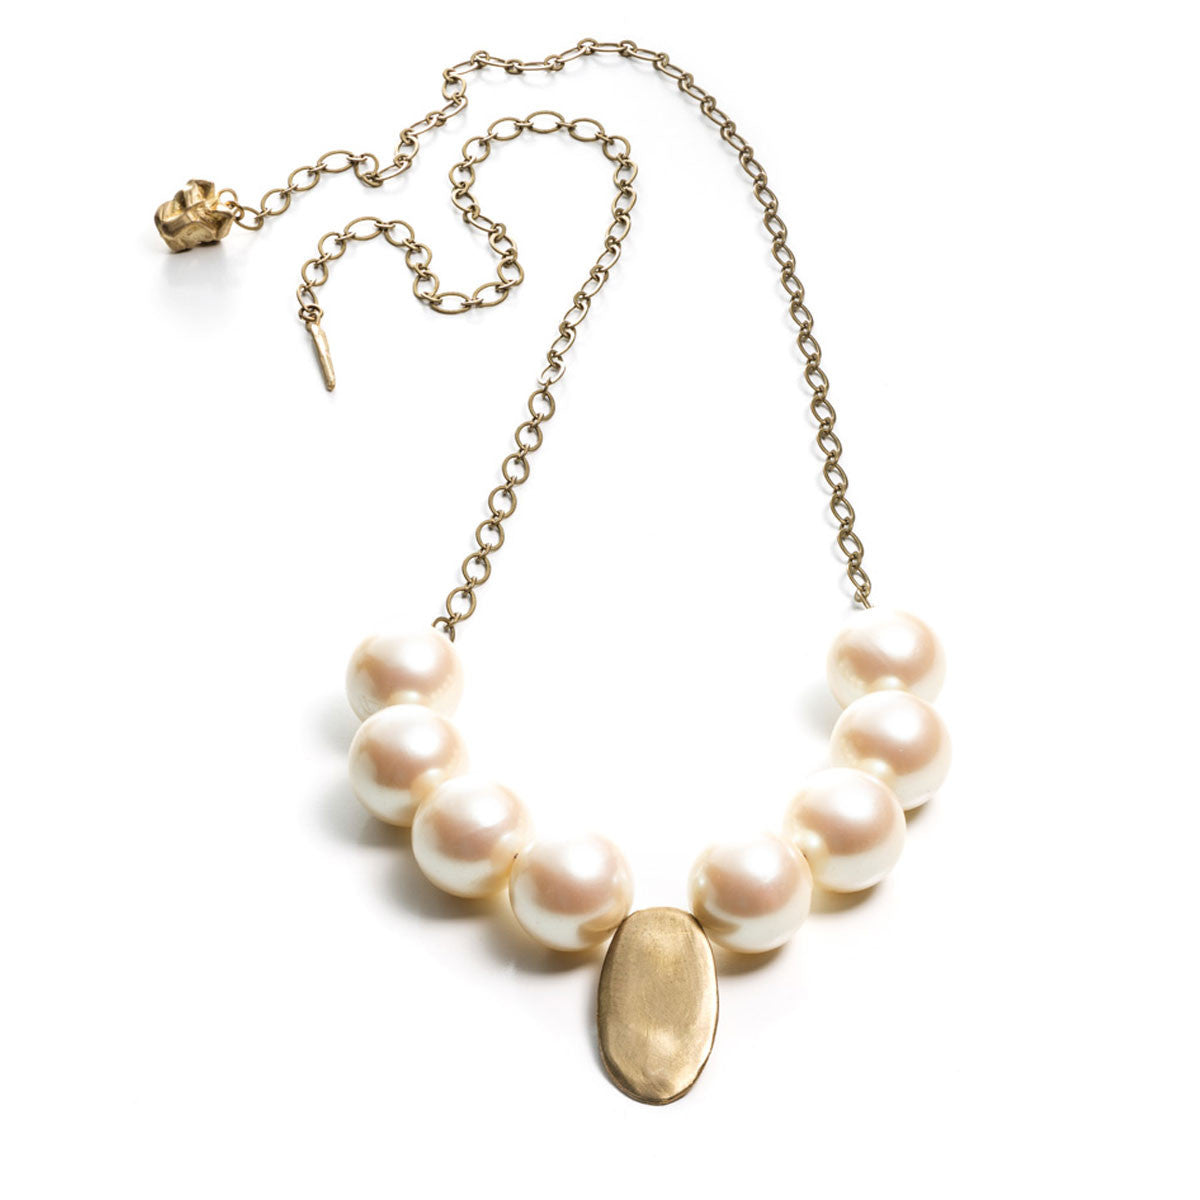 LARGEST PEARLS AND OVAL